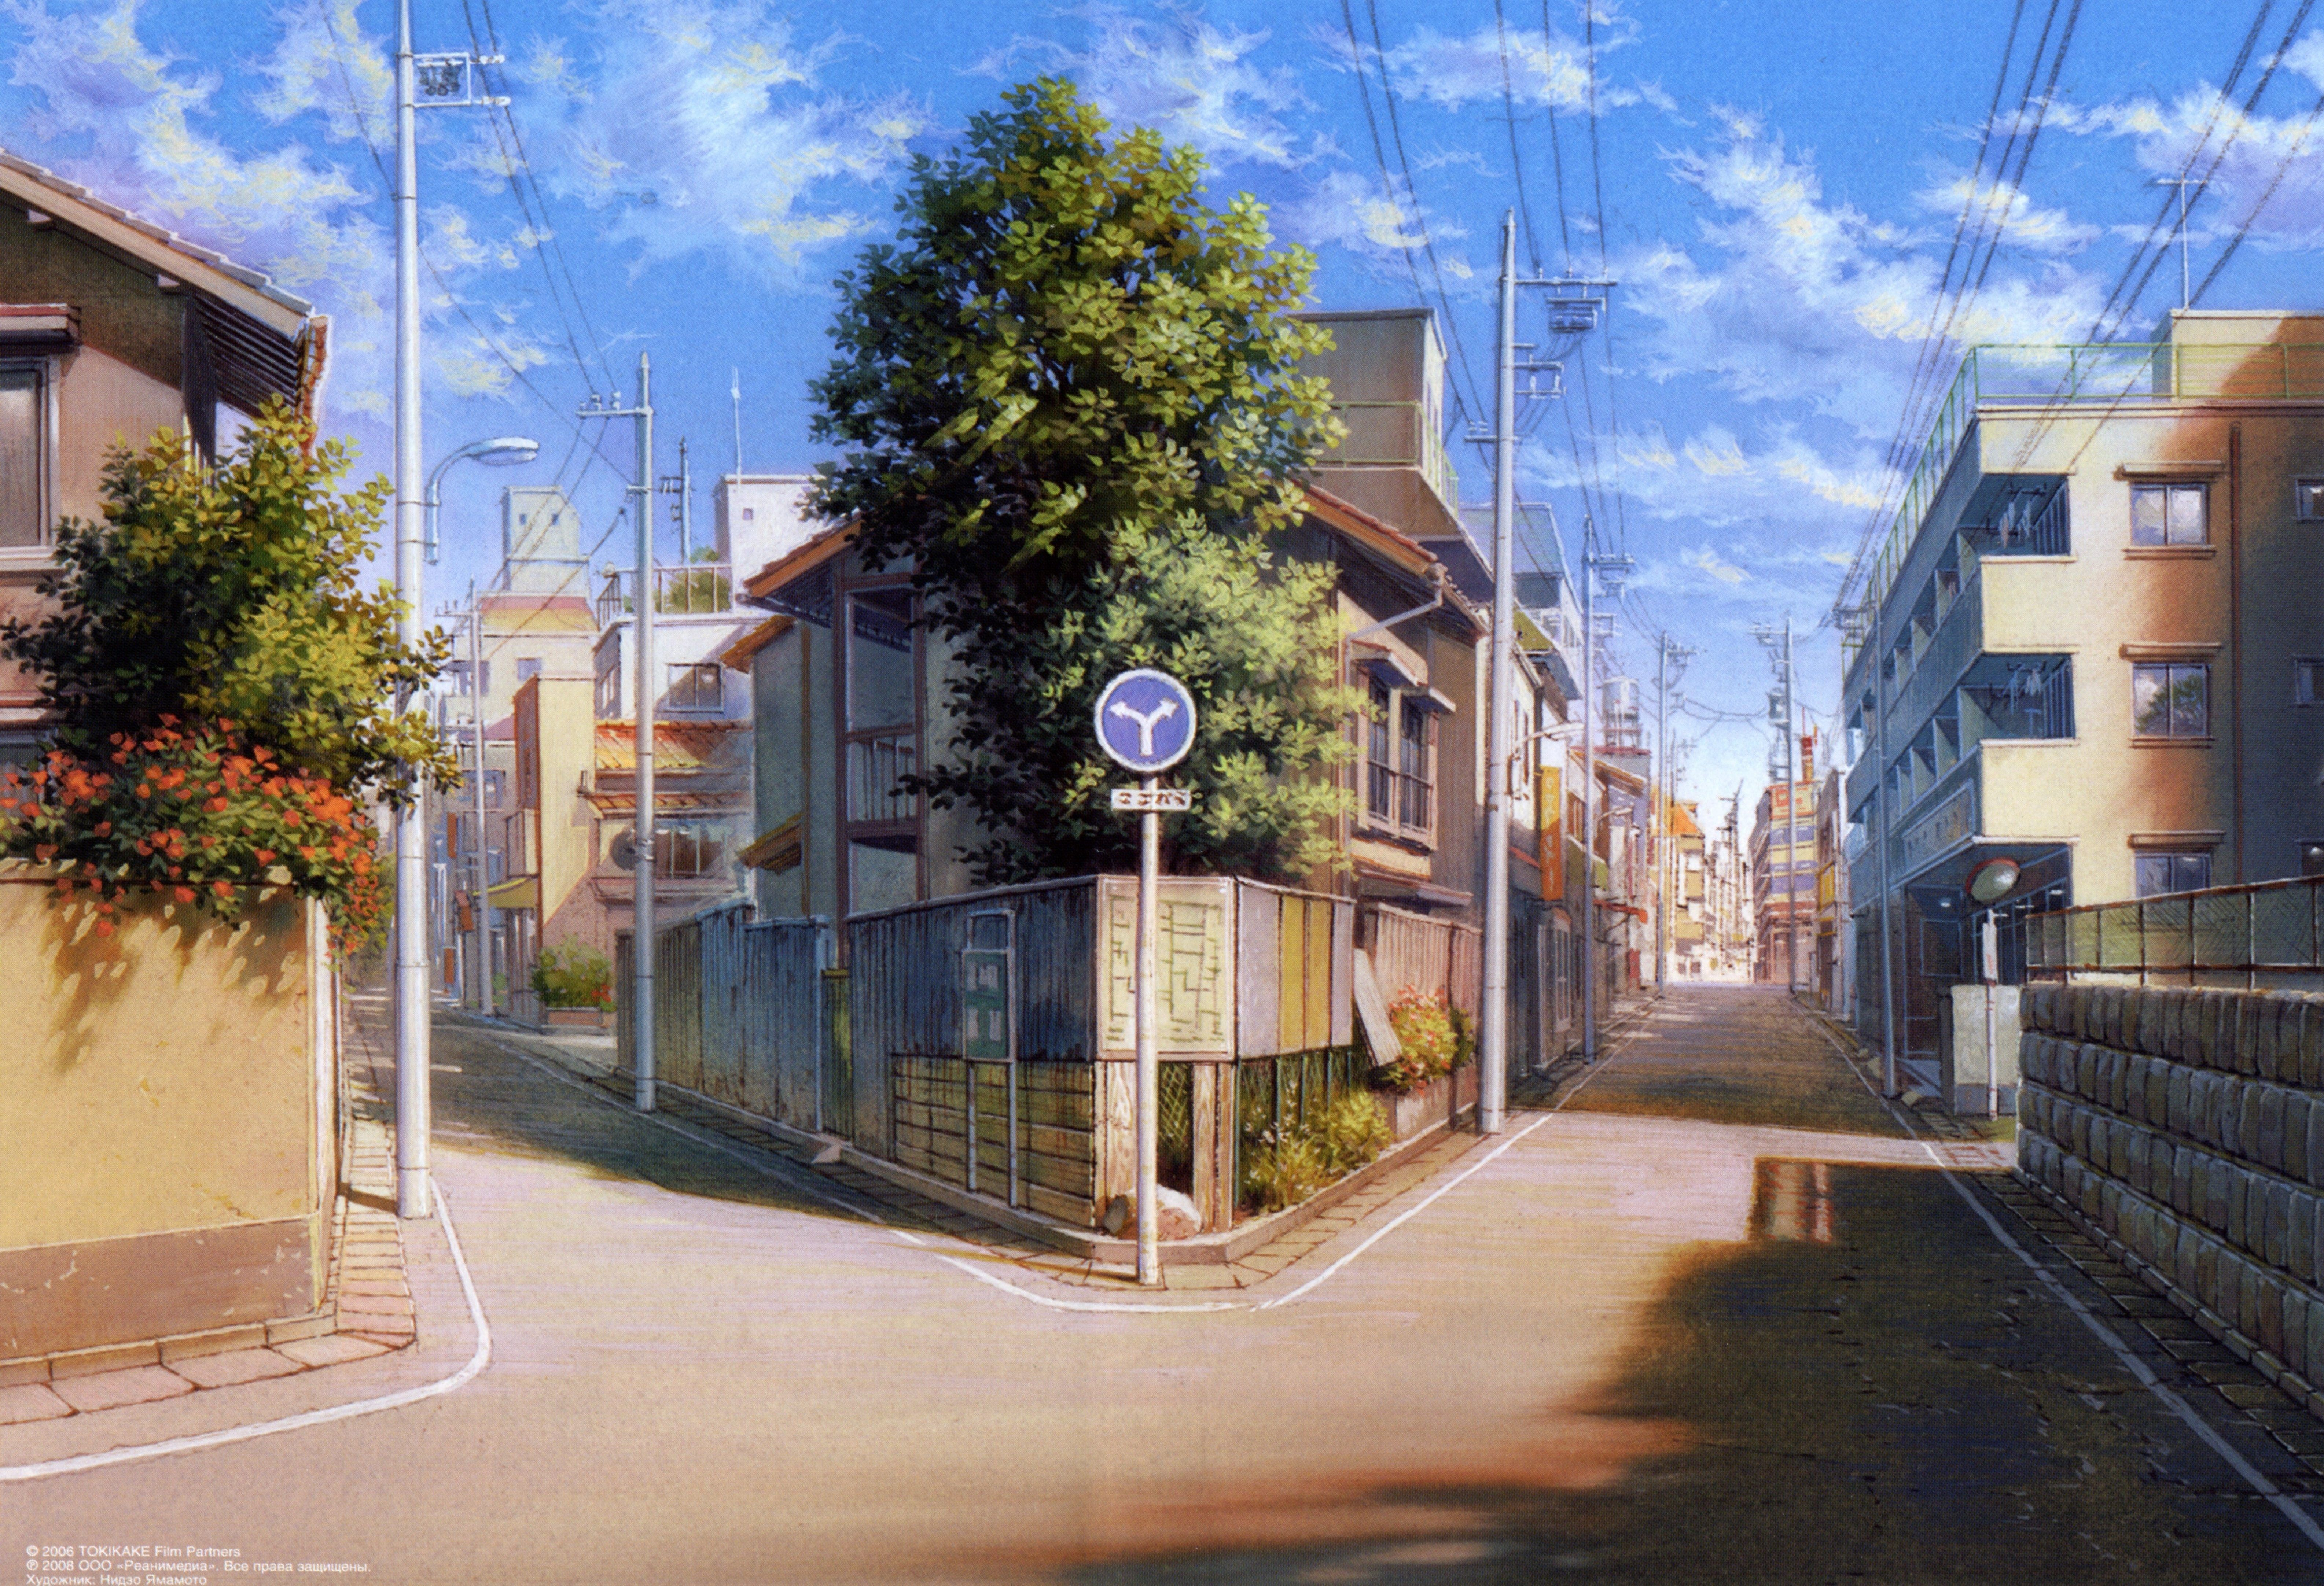 The Girl Who Leapt Through Time アニメの風景, 風景スケッチ, アニメ 背景